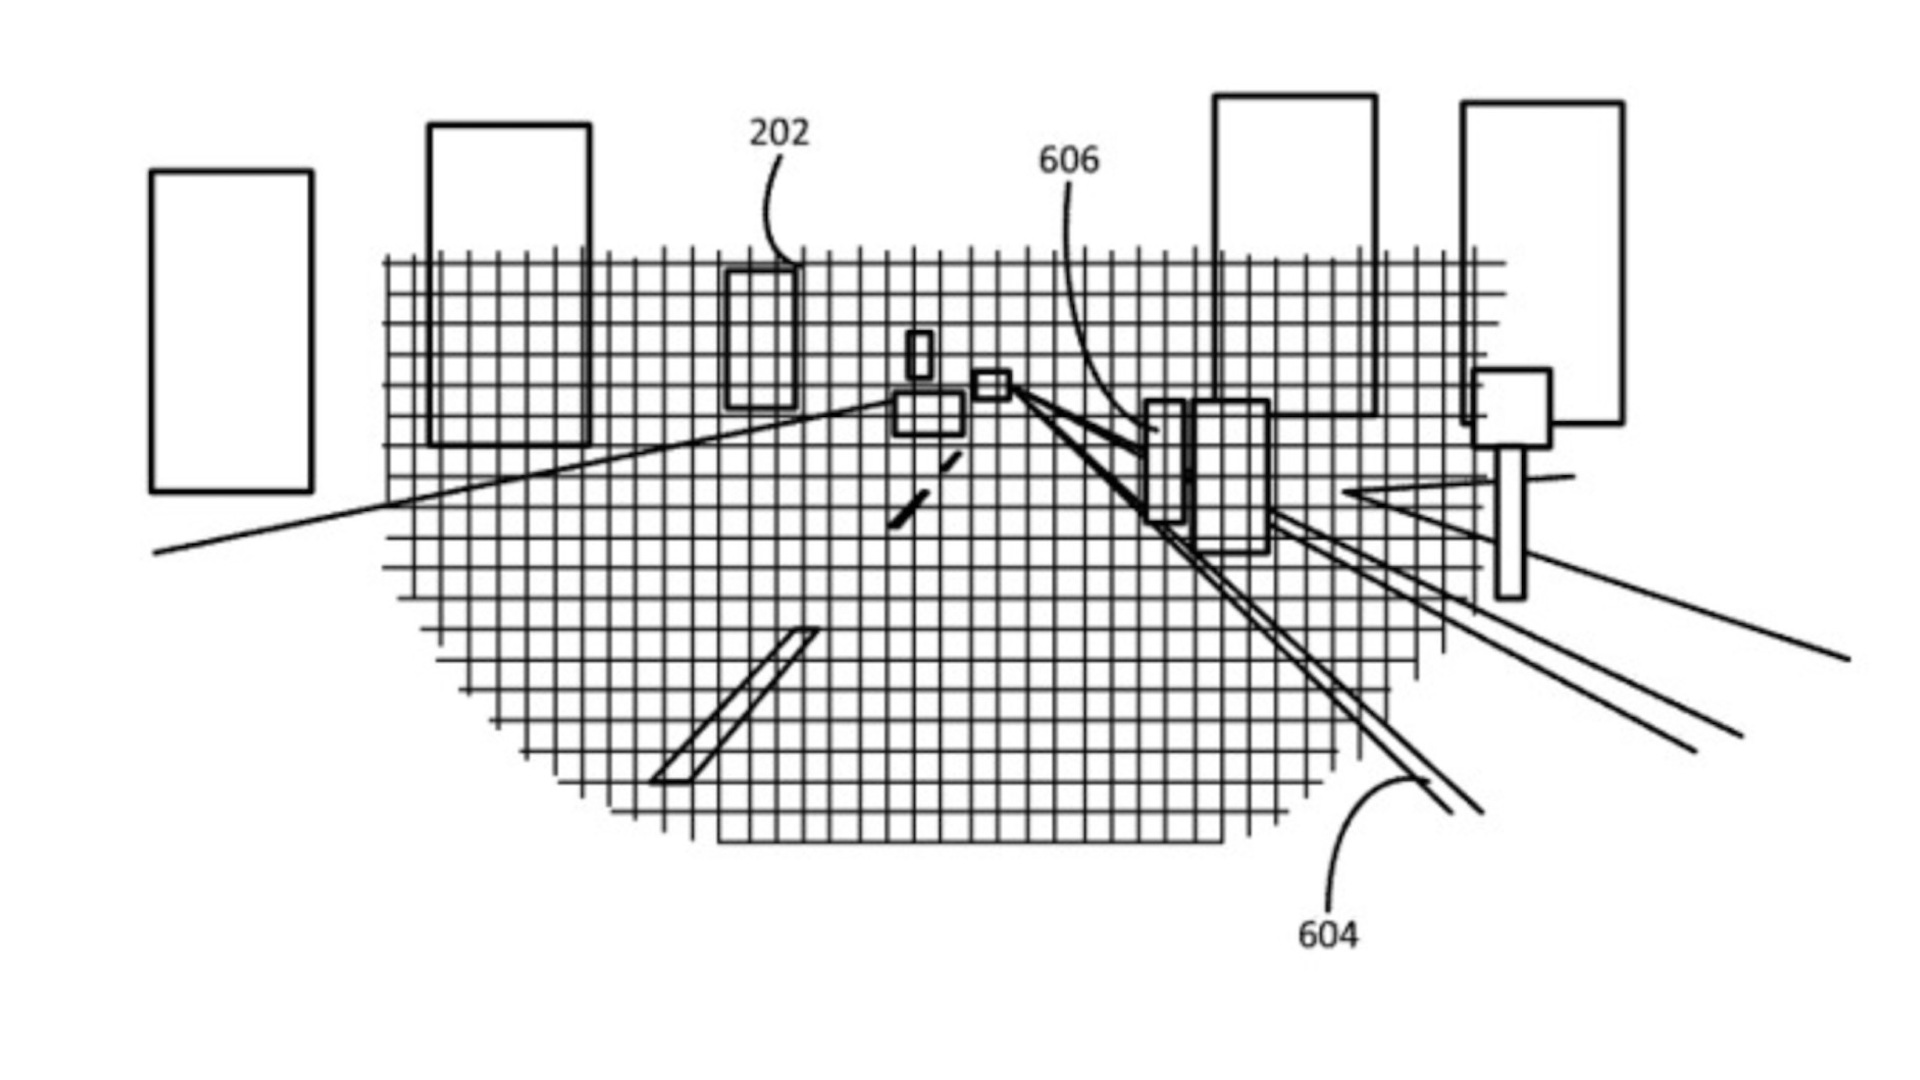 Apple headlight system patent to detect hazards